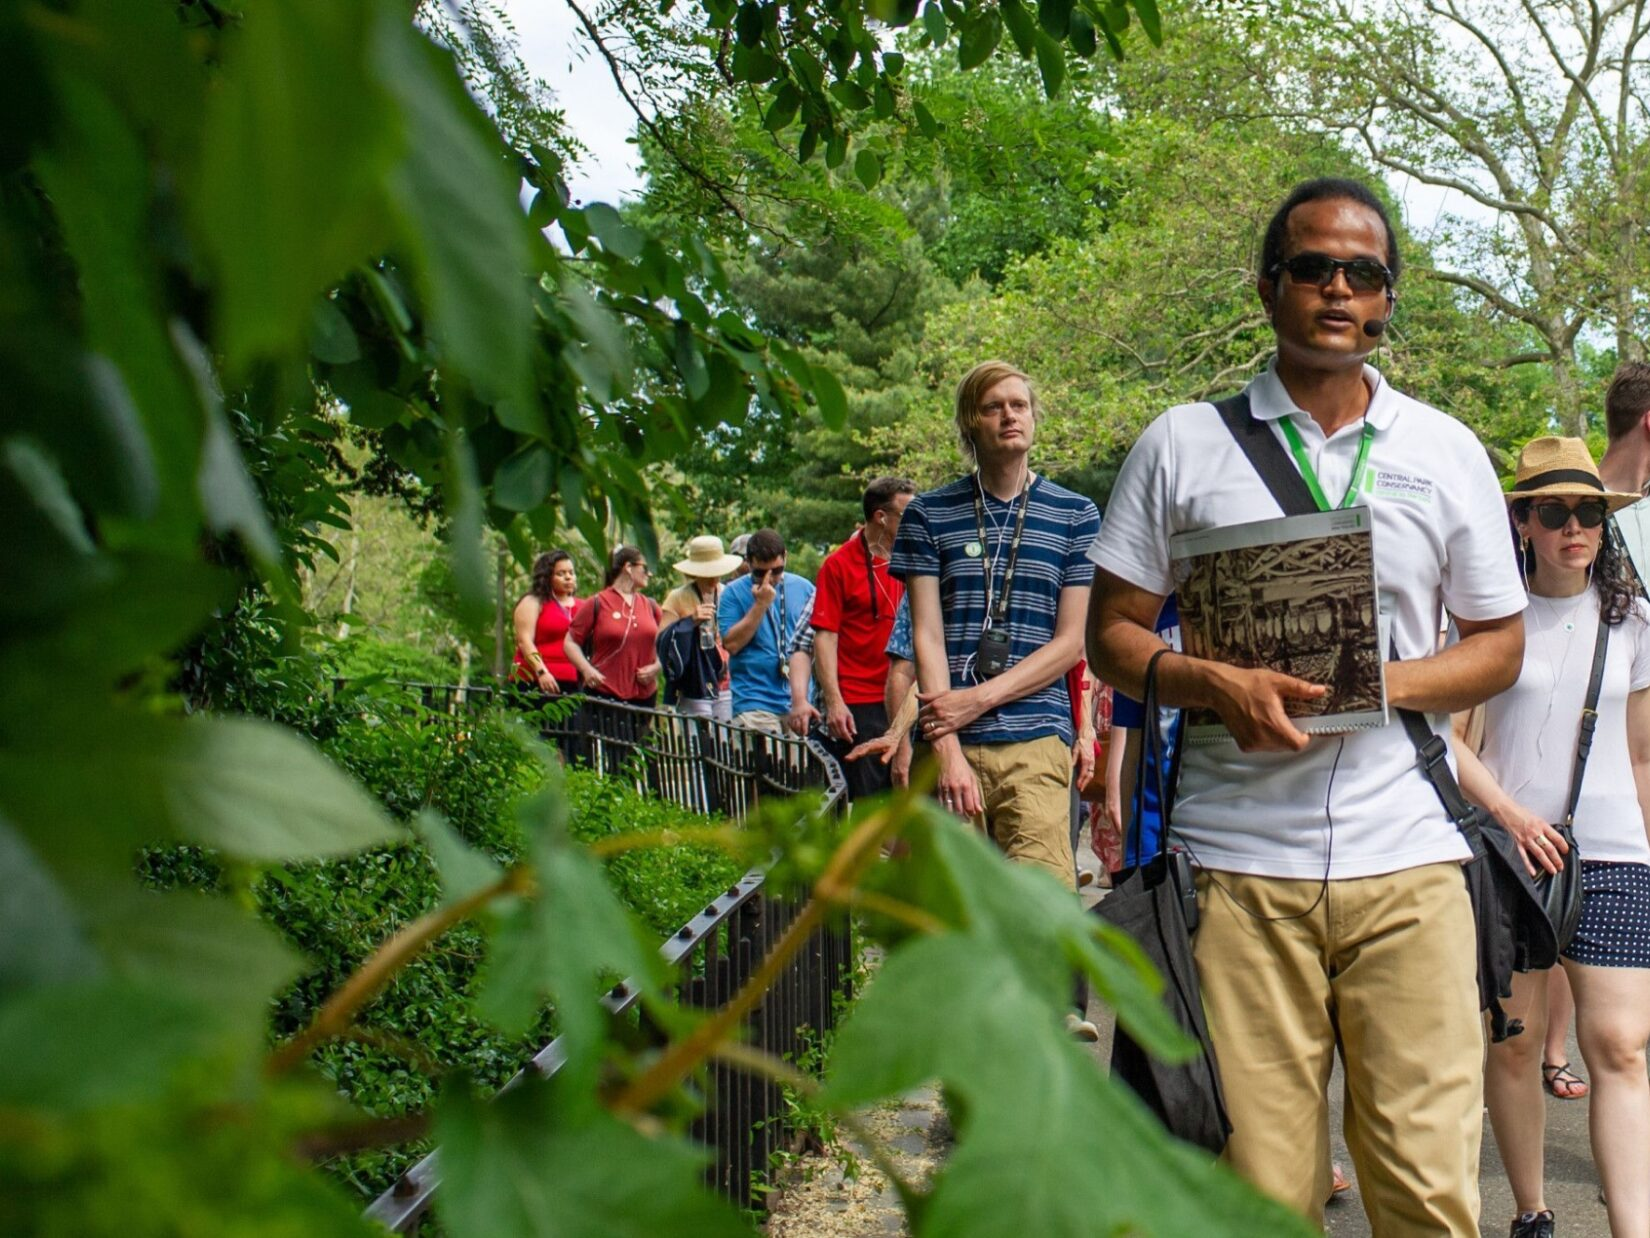 A Conservancy tour guide leads park goers on a tour through the southern end of the Park.